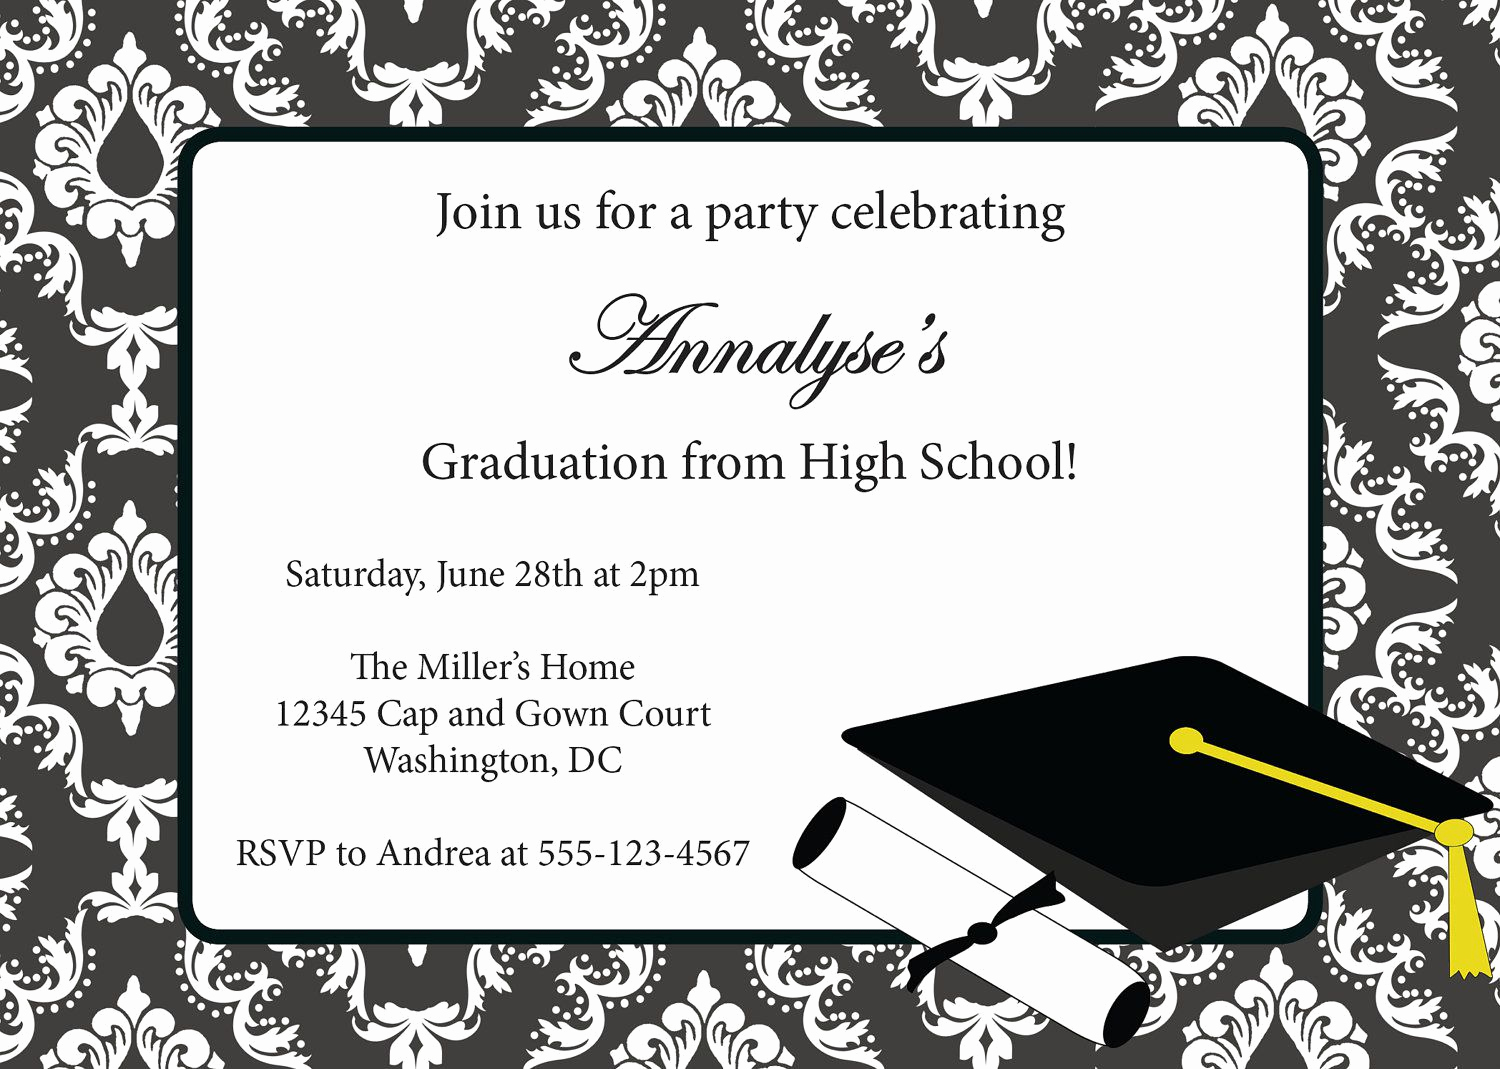 Sample Graduation Party Invitation Lovely Graduation Invitations Invitation Card for Graduation